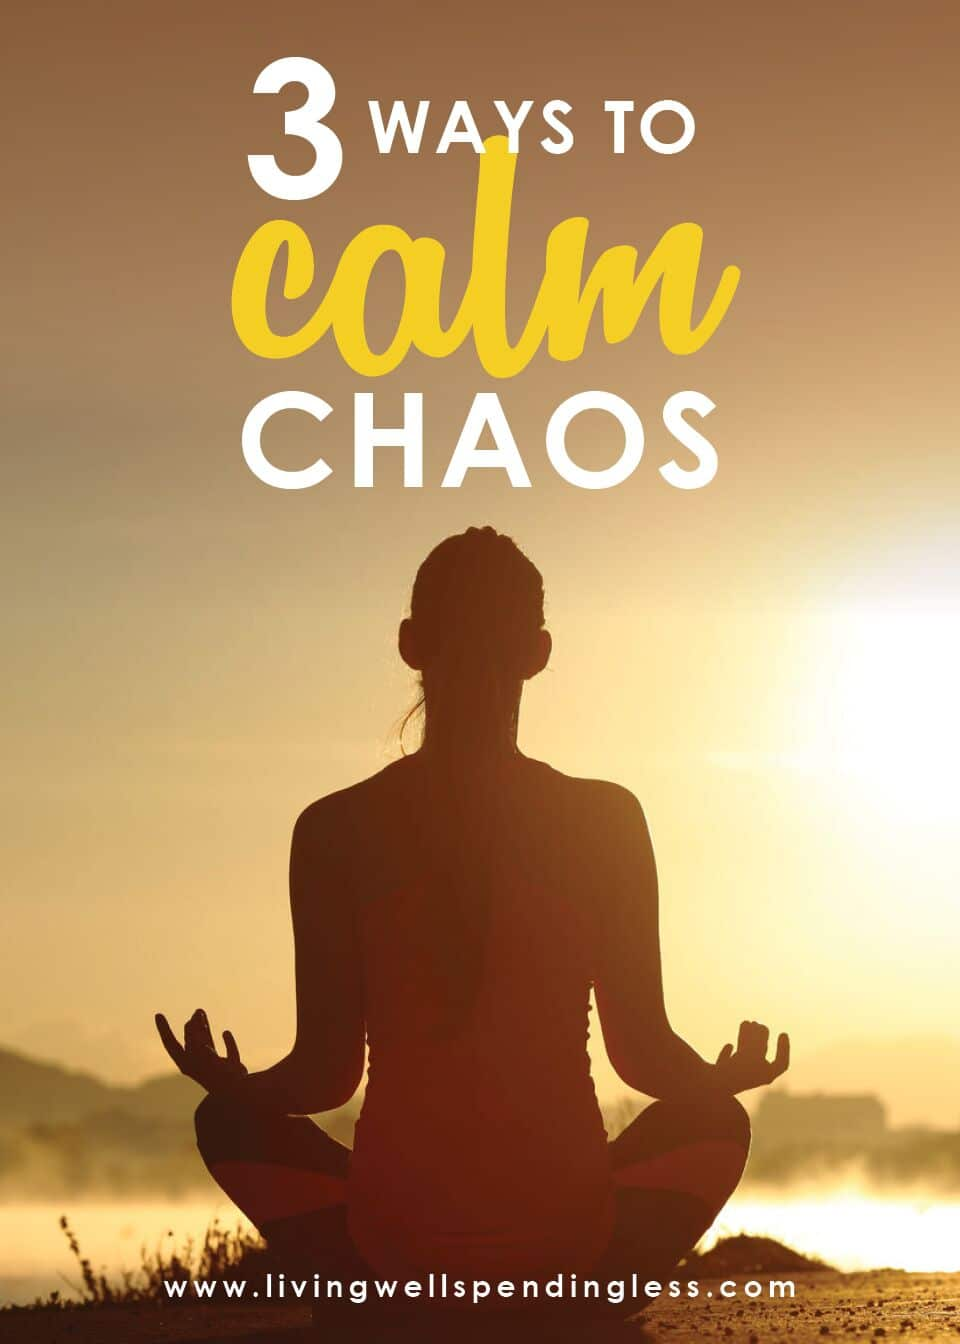 3 Ways to Calm Chaos | How to Catch Your Breath When Life Gets Crazy